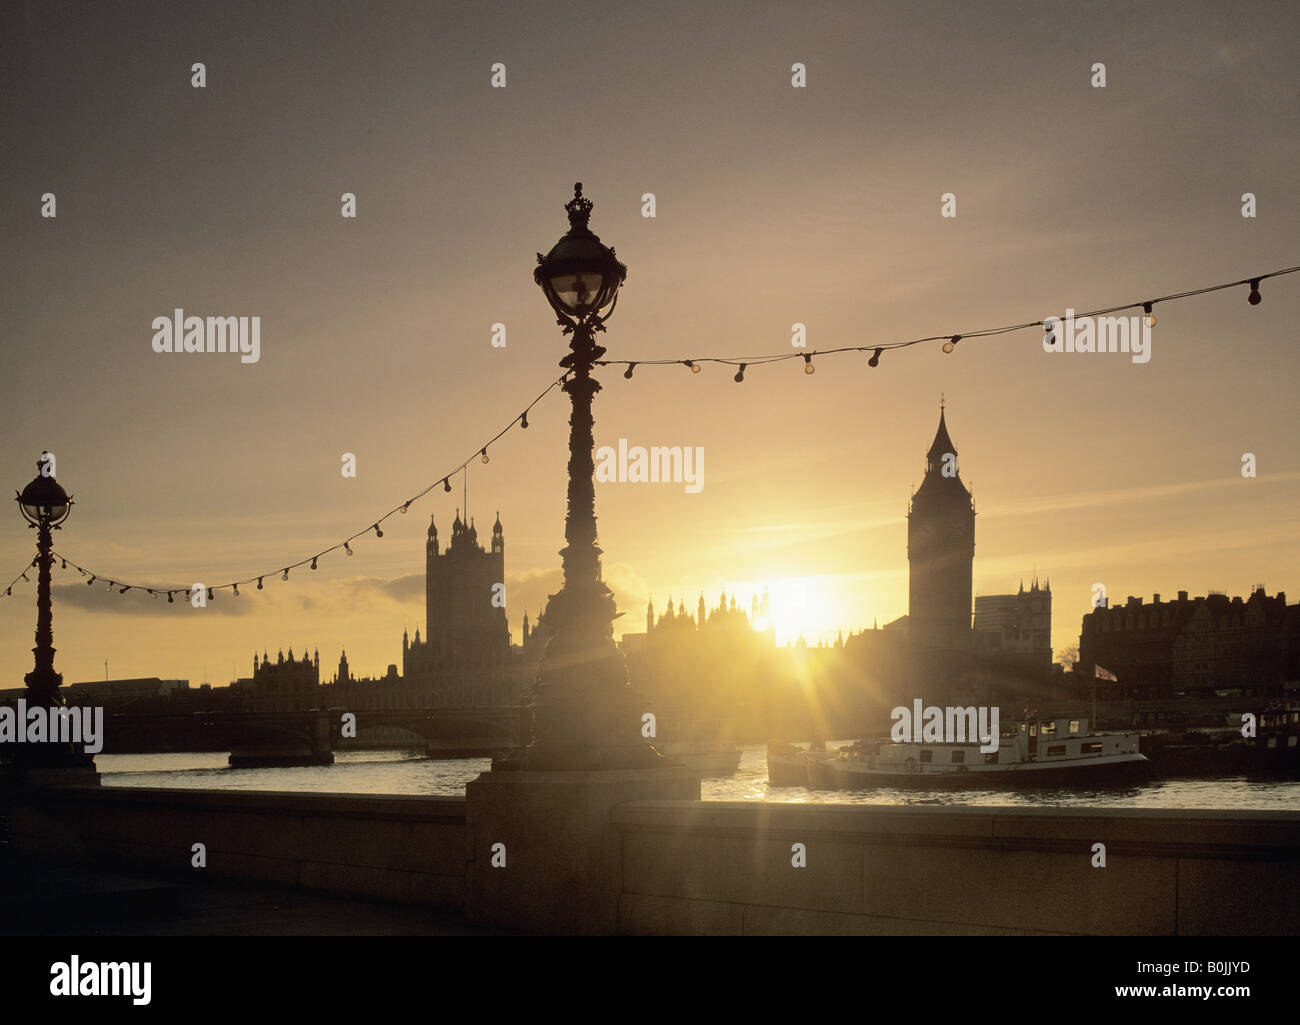 sunset river thames london england uk europe houses of parliament big ben view from the embankment - Stock Image